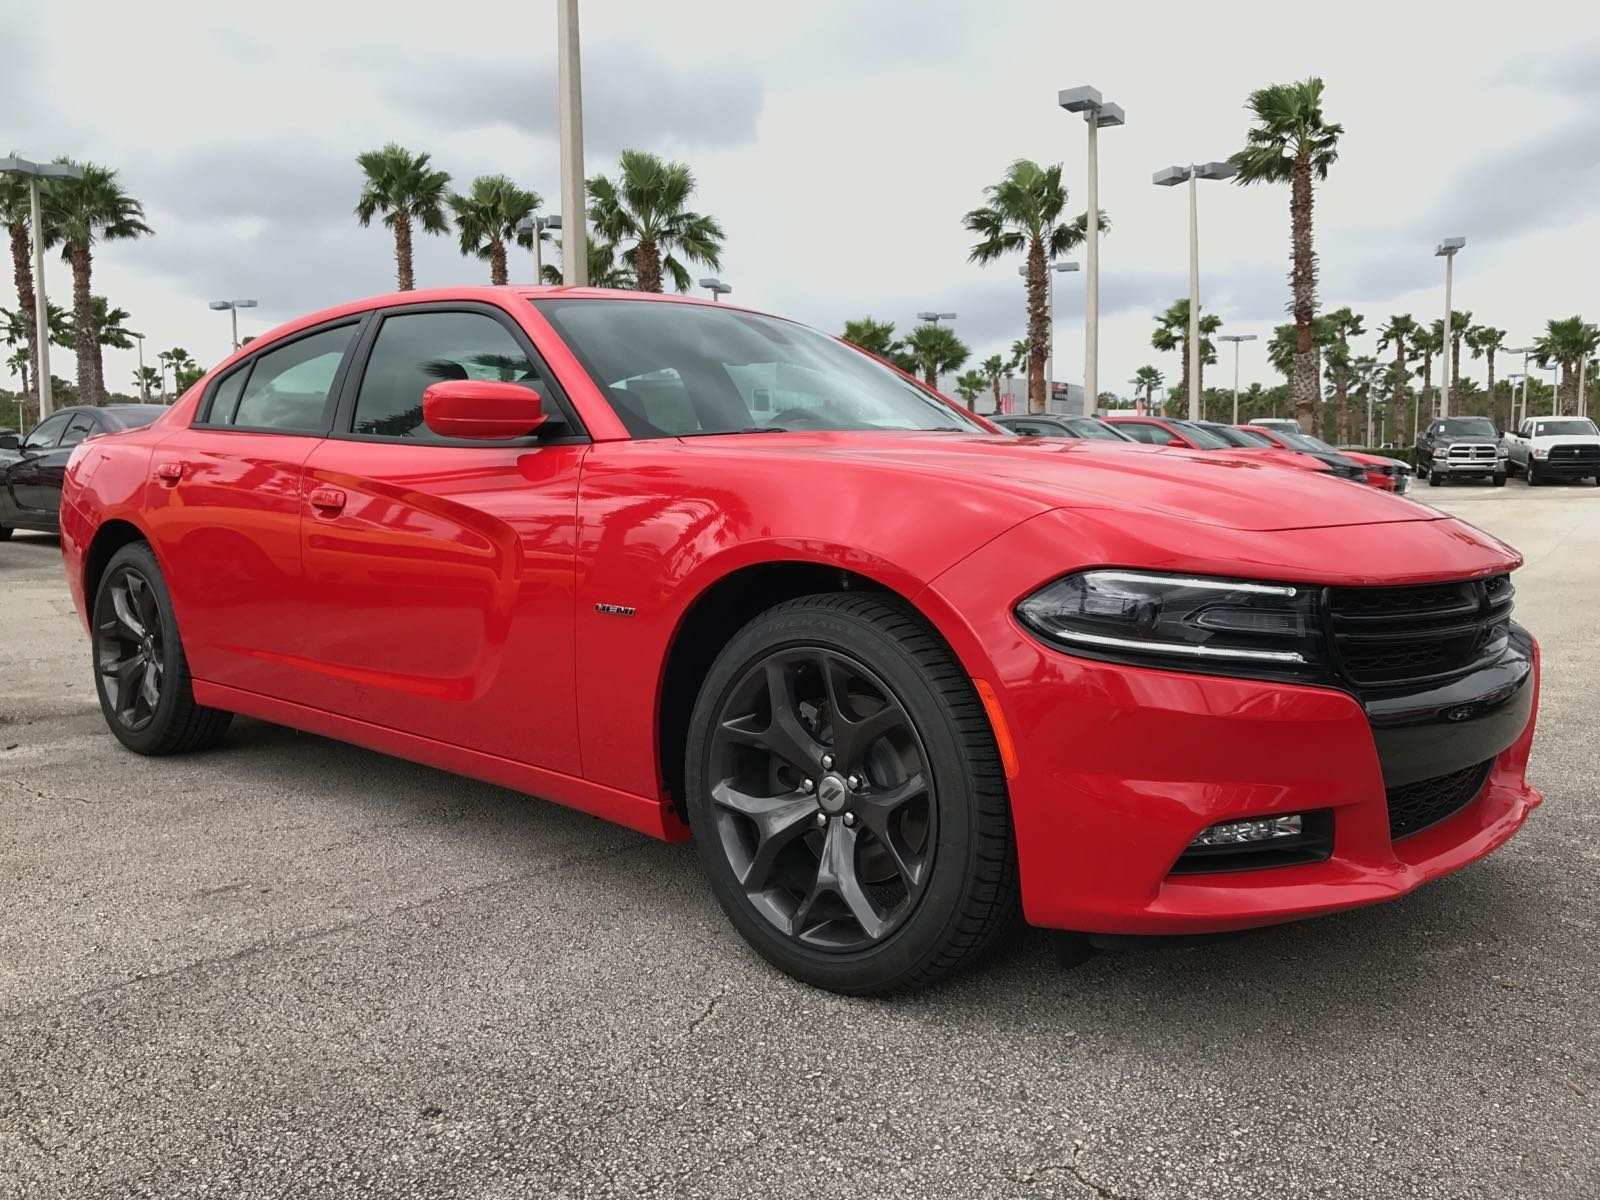 86 New The Dodge Charger 2019 Concept Spy Shoot Price and Review by The Dodge Charger 2019 Concept Spy Shoot